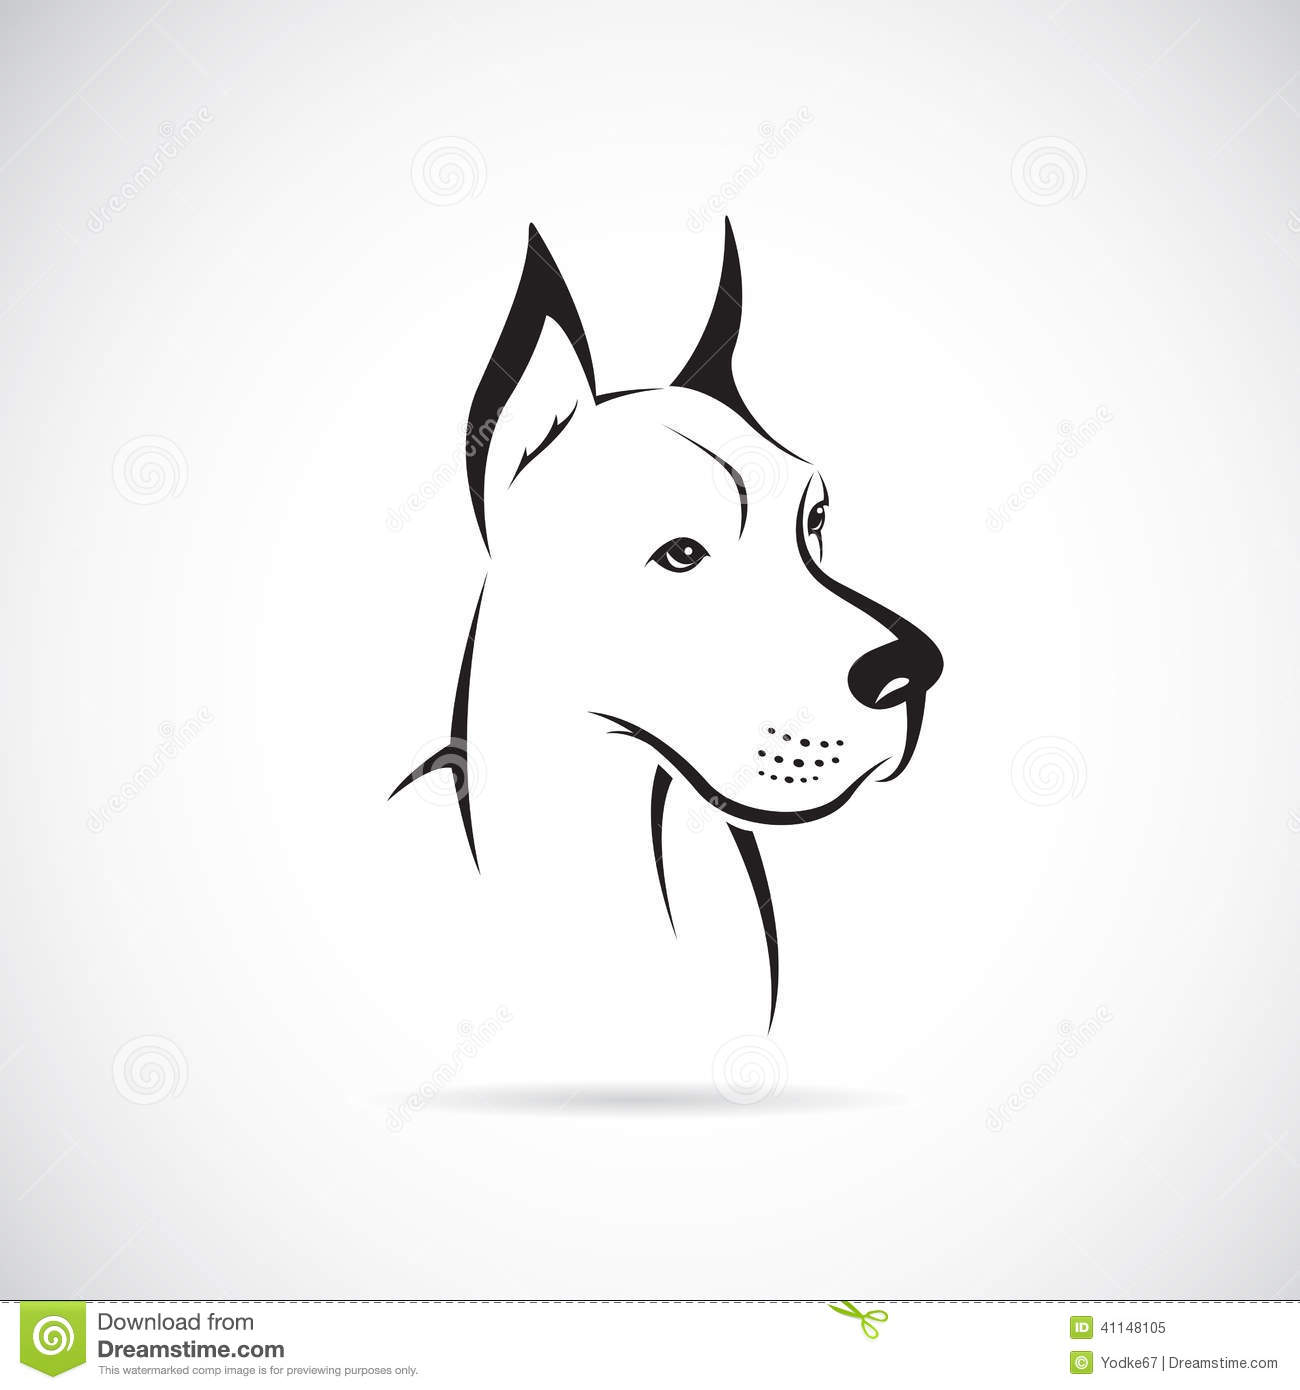 Vector Image Of An Dog (Great Dane) Stock Vector - Image: 41148105